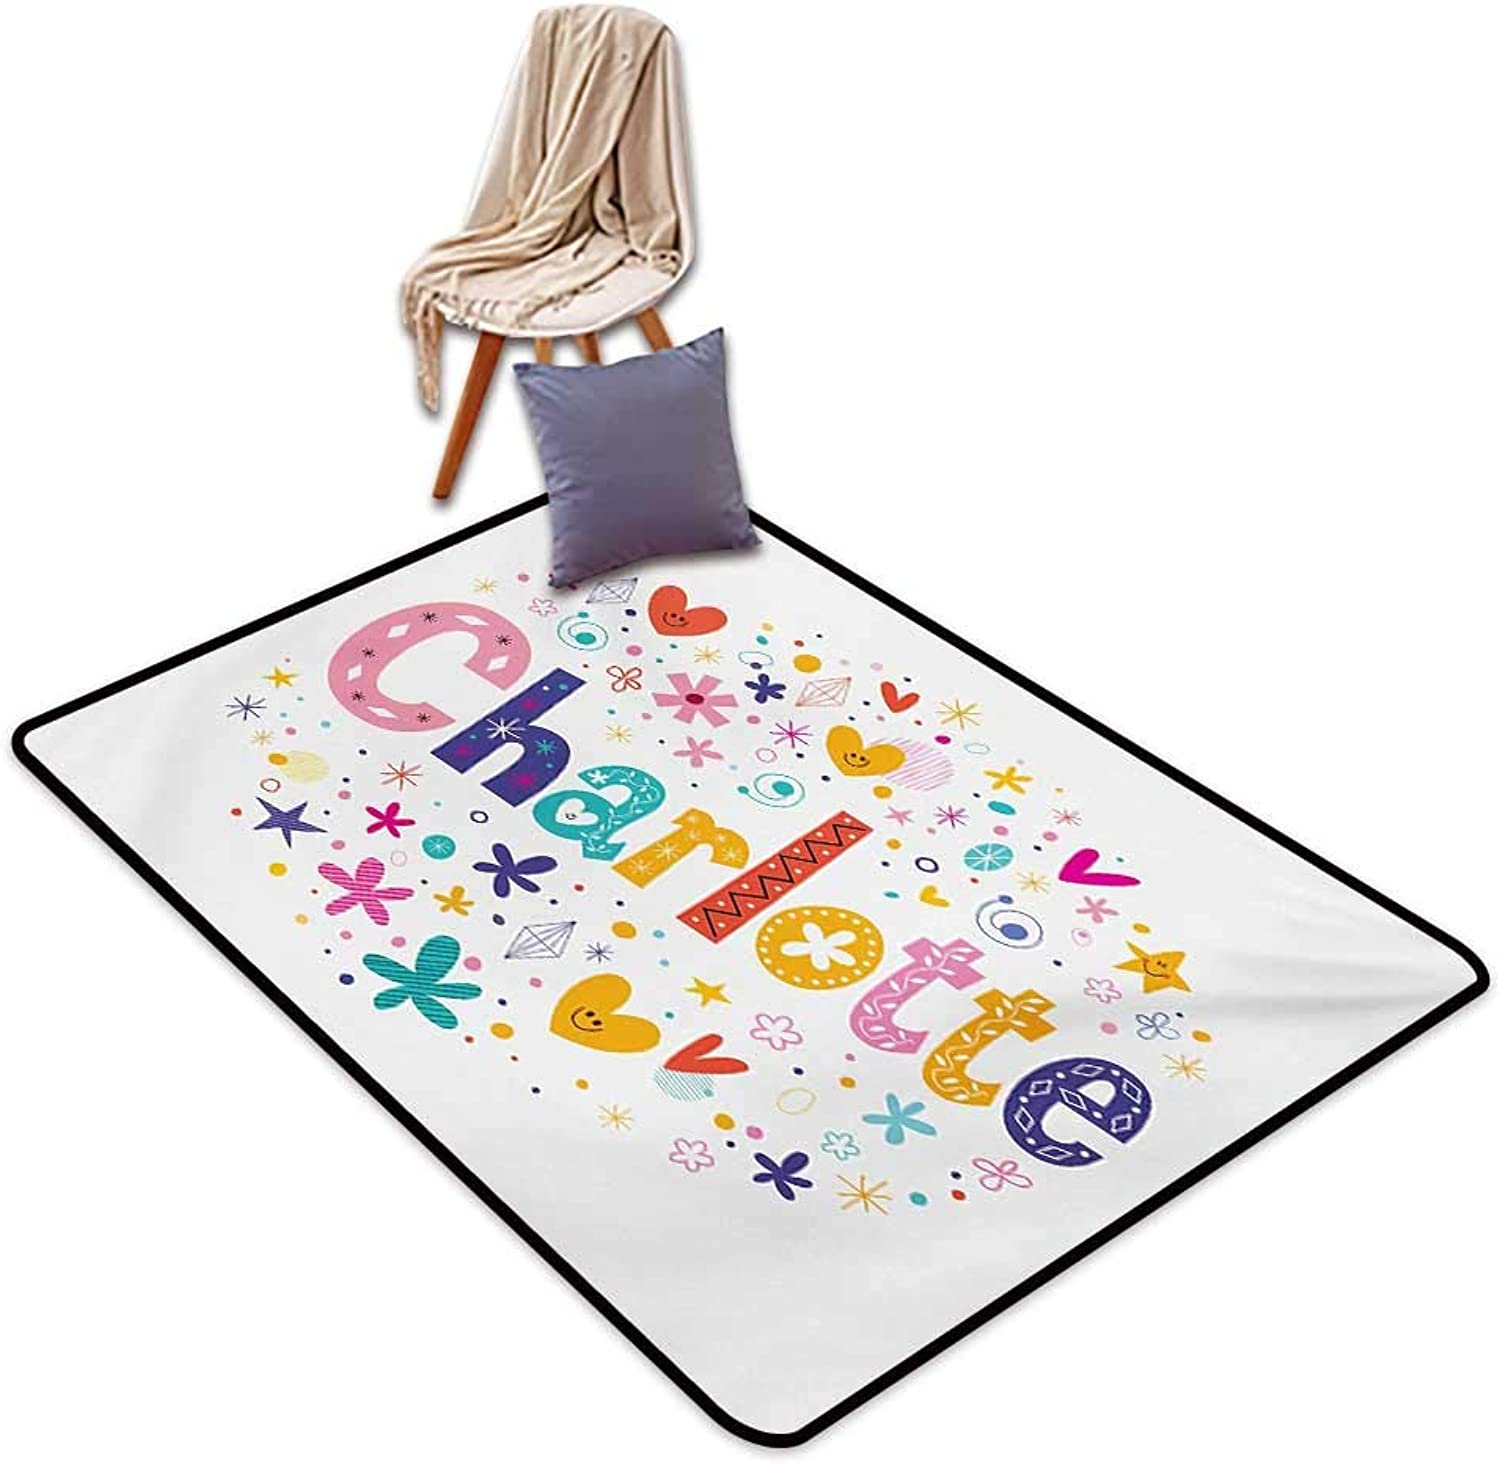 Charlotte Large Outdoor Indoor Rubber Doormat Happy Smiling Stars and Hearts Joyous Composition of colorful Female Name Design Water Absorption, Anti-Skid and Oil Proof 48  Wx59 L Multicolor